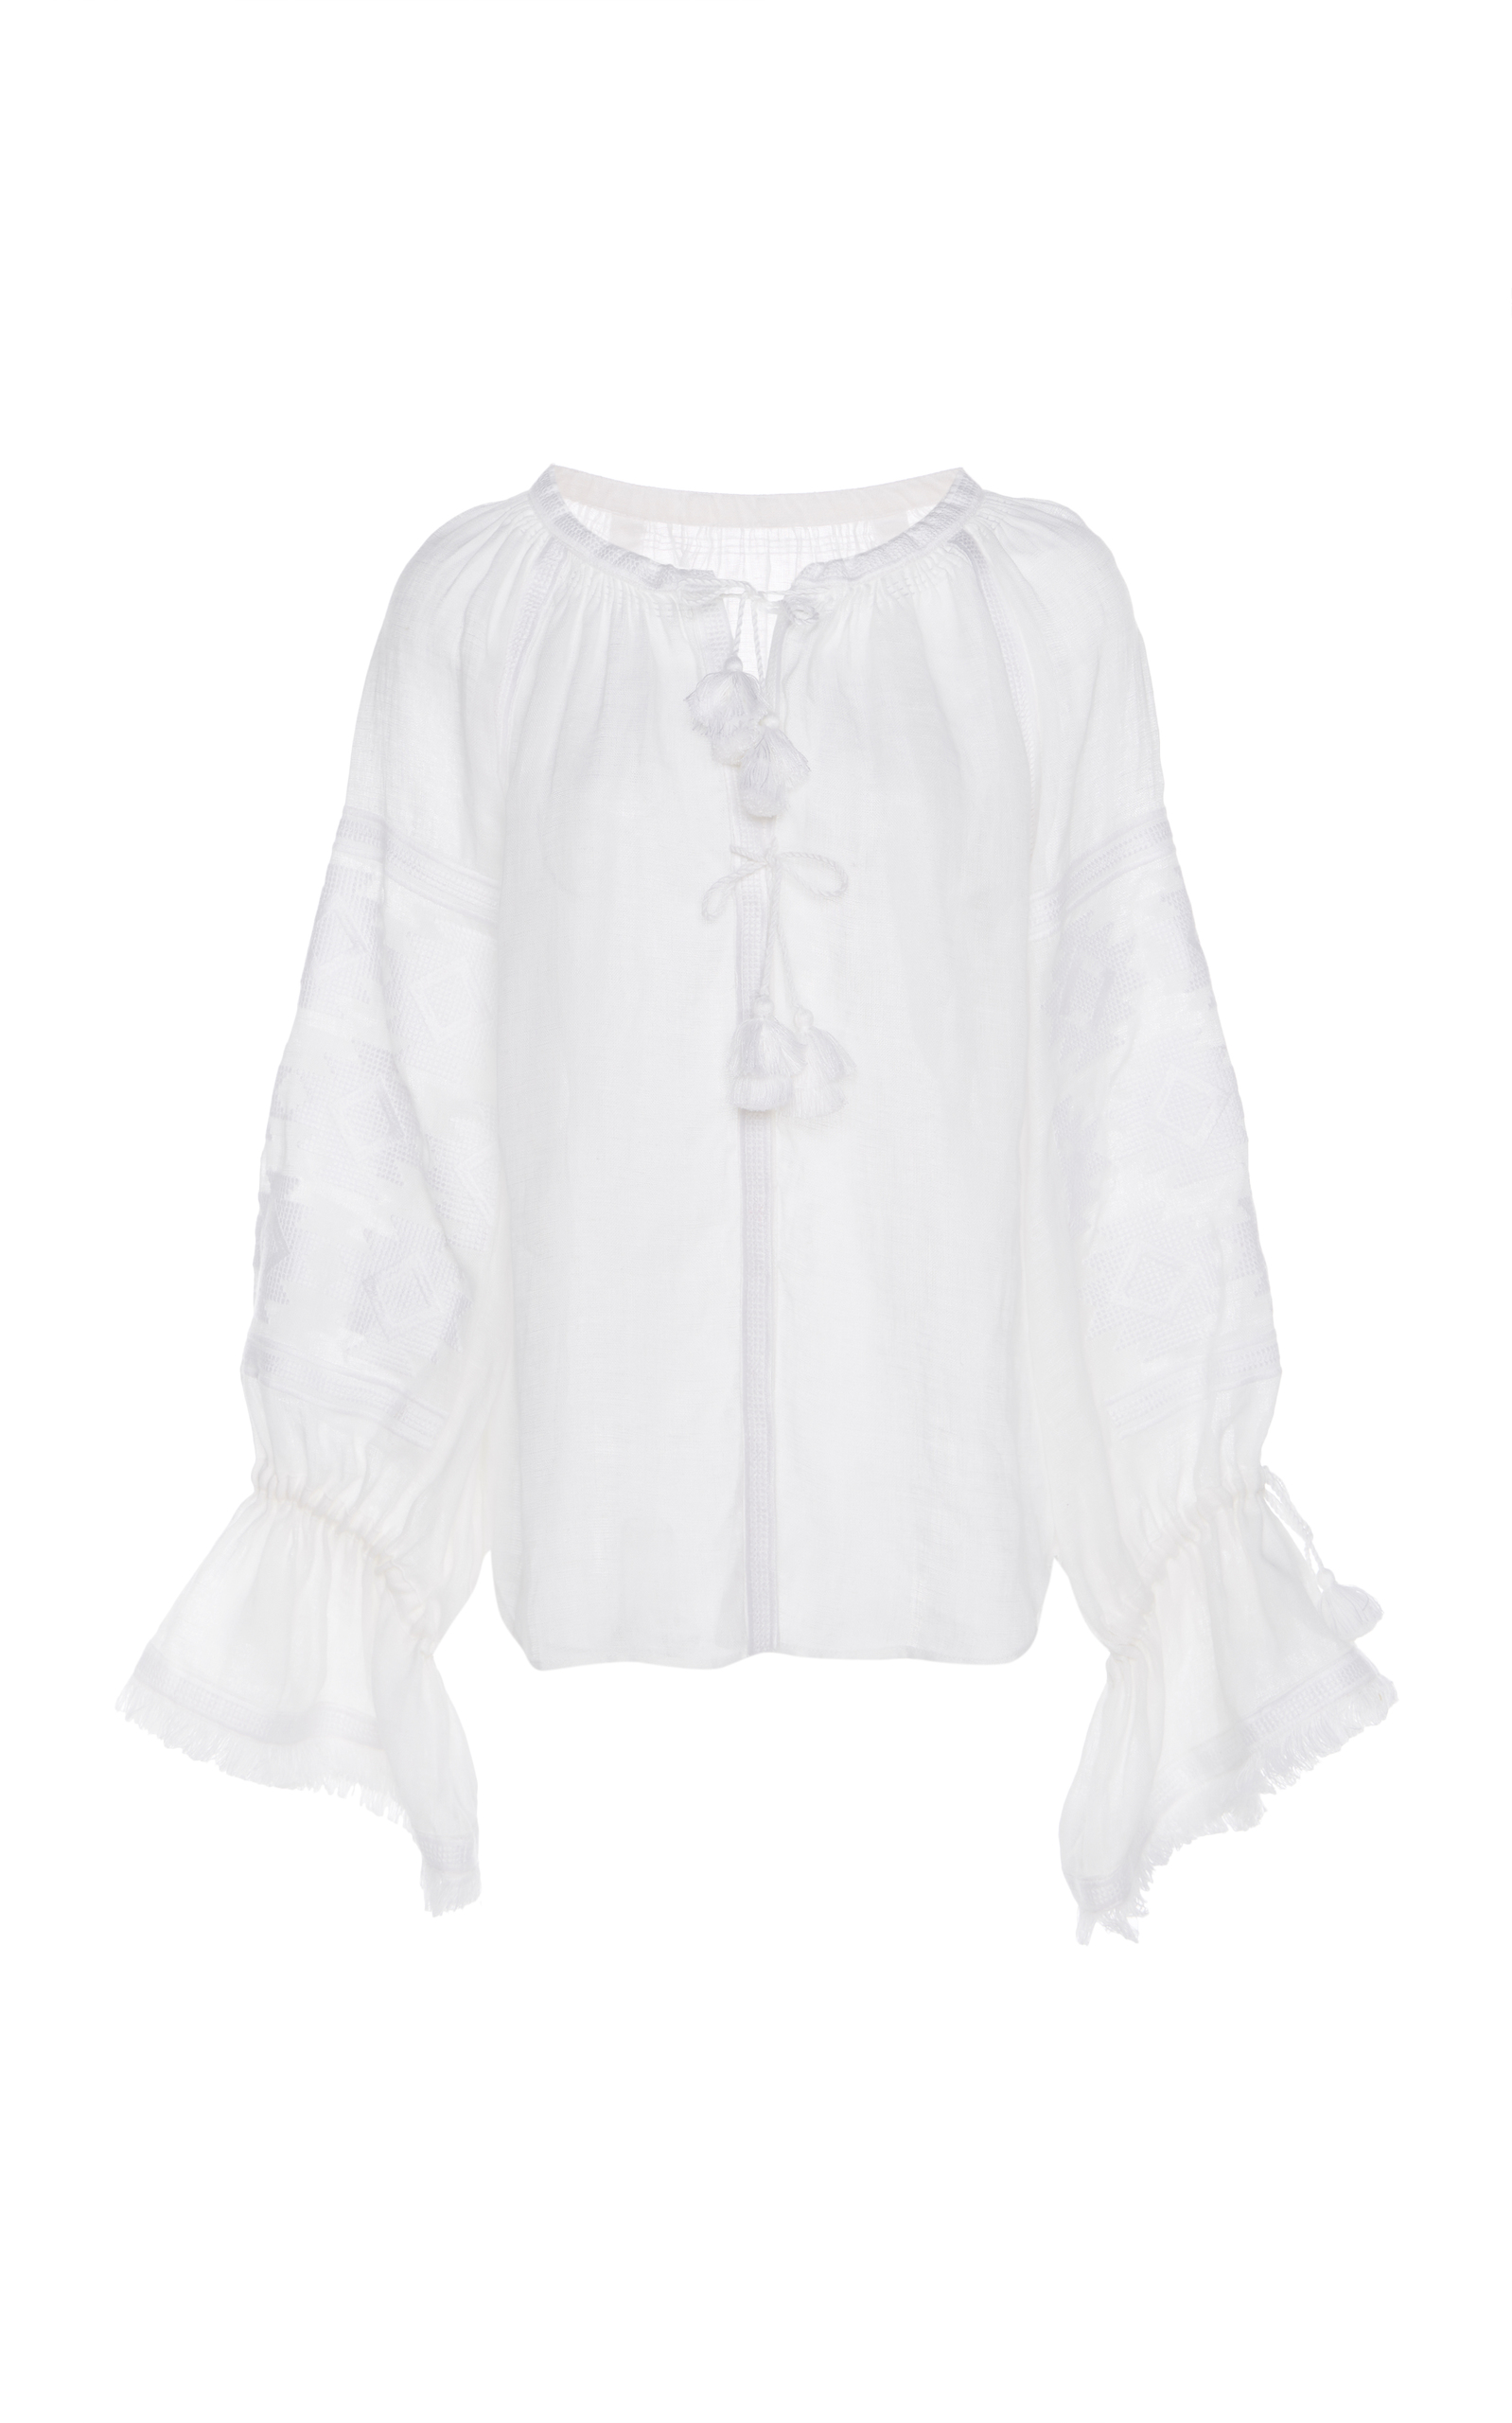 MARCH11 Geometry Blouse in White